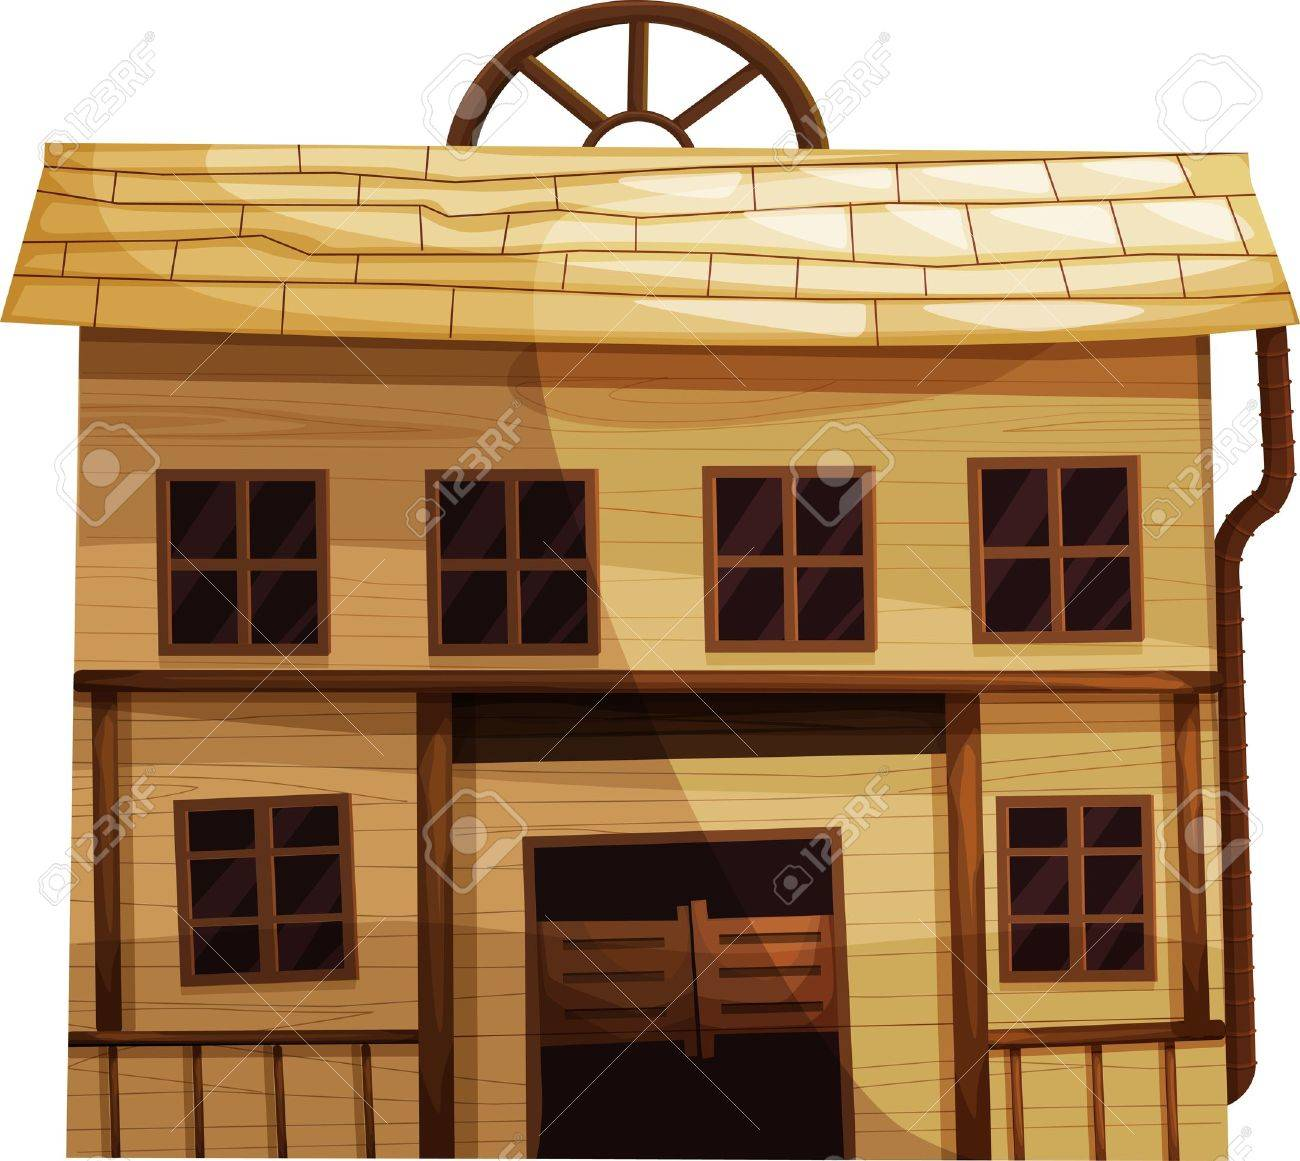 Illustration of an isolated building from the Wild West Stock Vector - 13424860